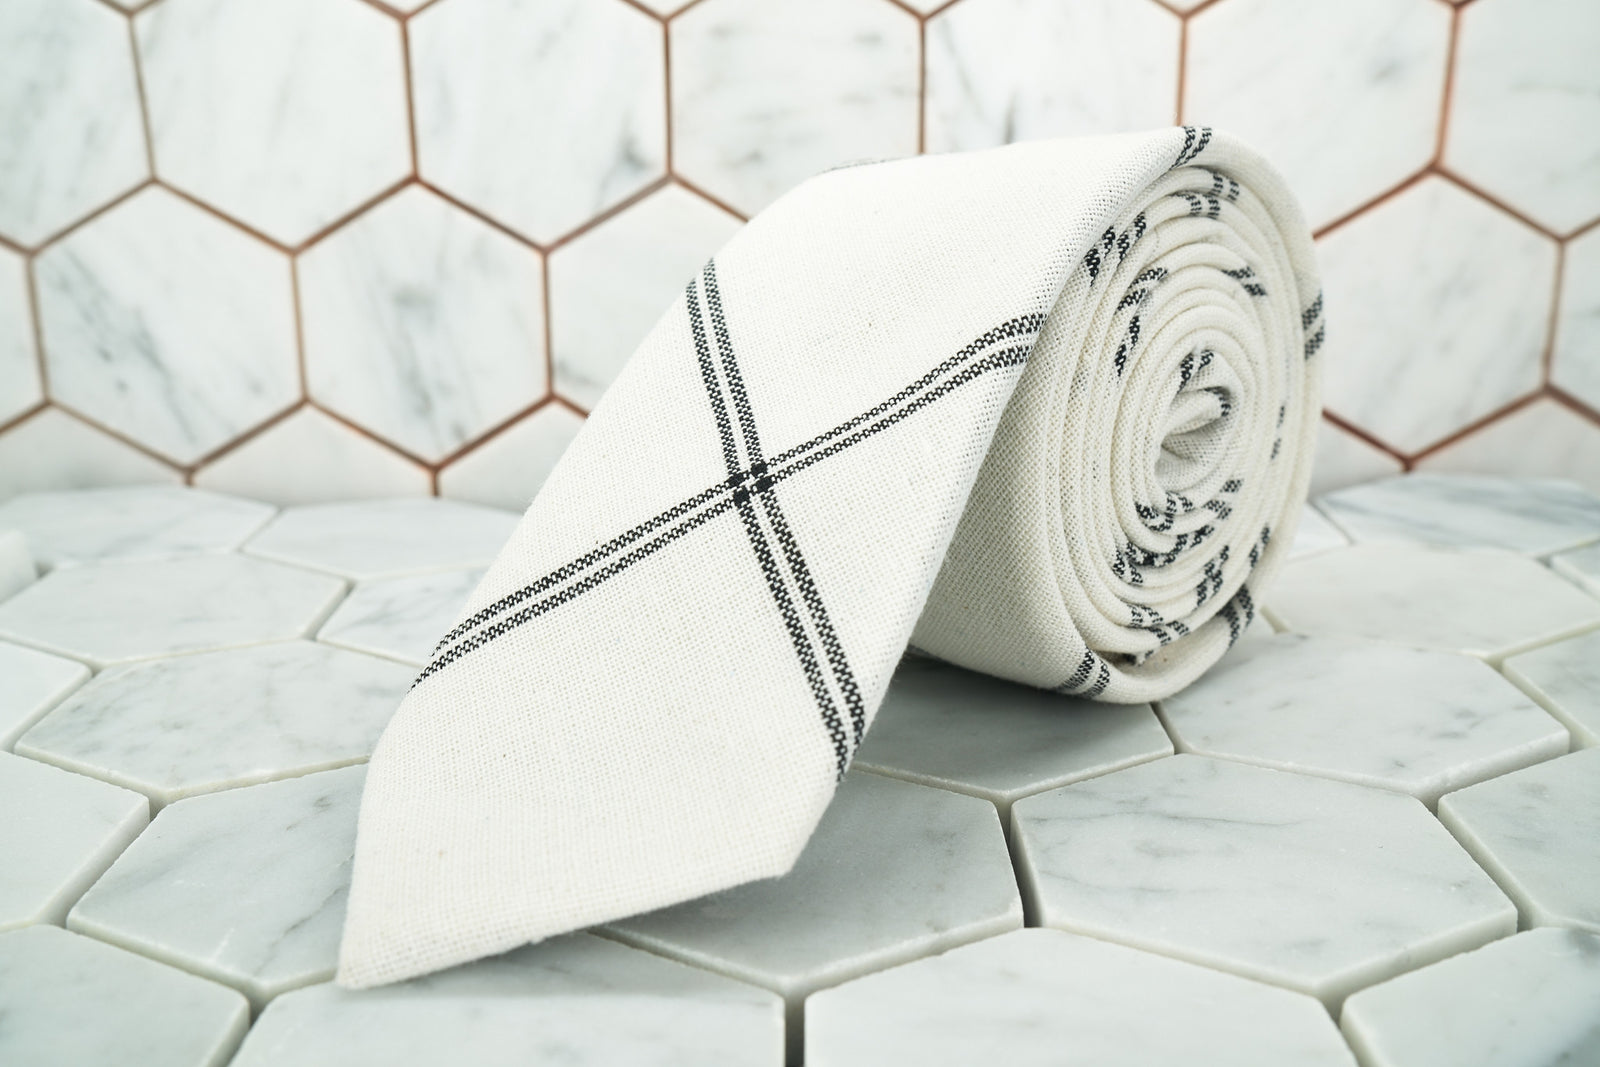 The Ghost White argyle linen necktie made by Dear Martian is rolled up  and lying on a hexagon tiled background.